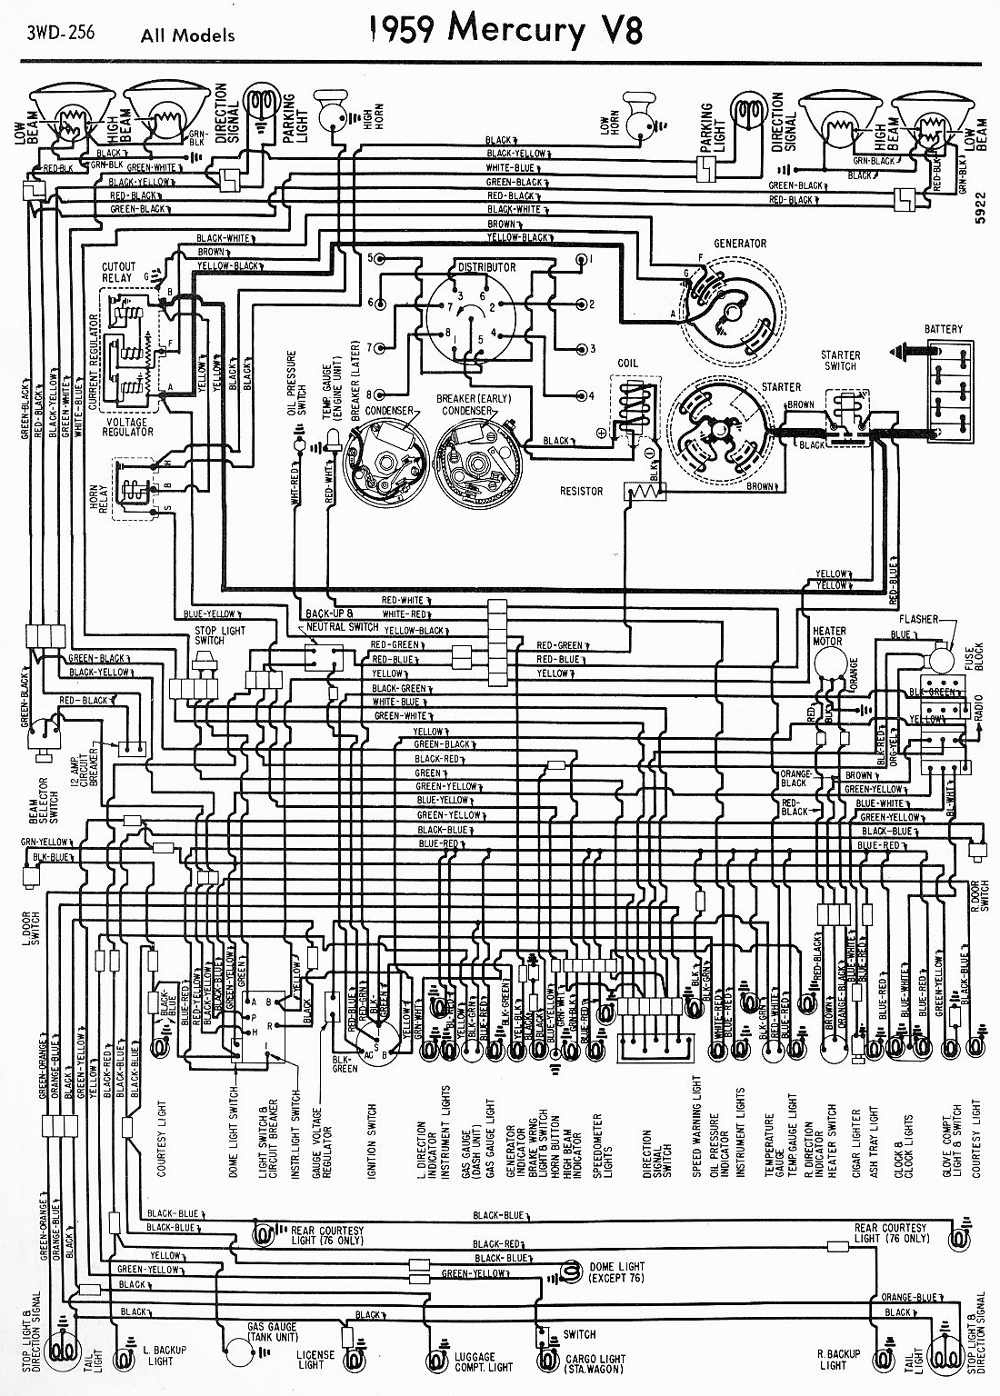 Wiring Diagrams 911 December 2011 1956 Mercury Montclair Diagram Schematic 1959 V8 All Models